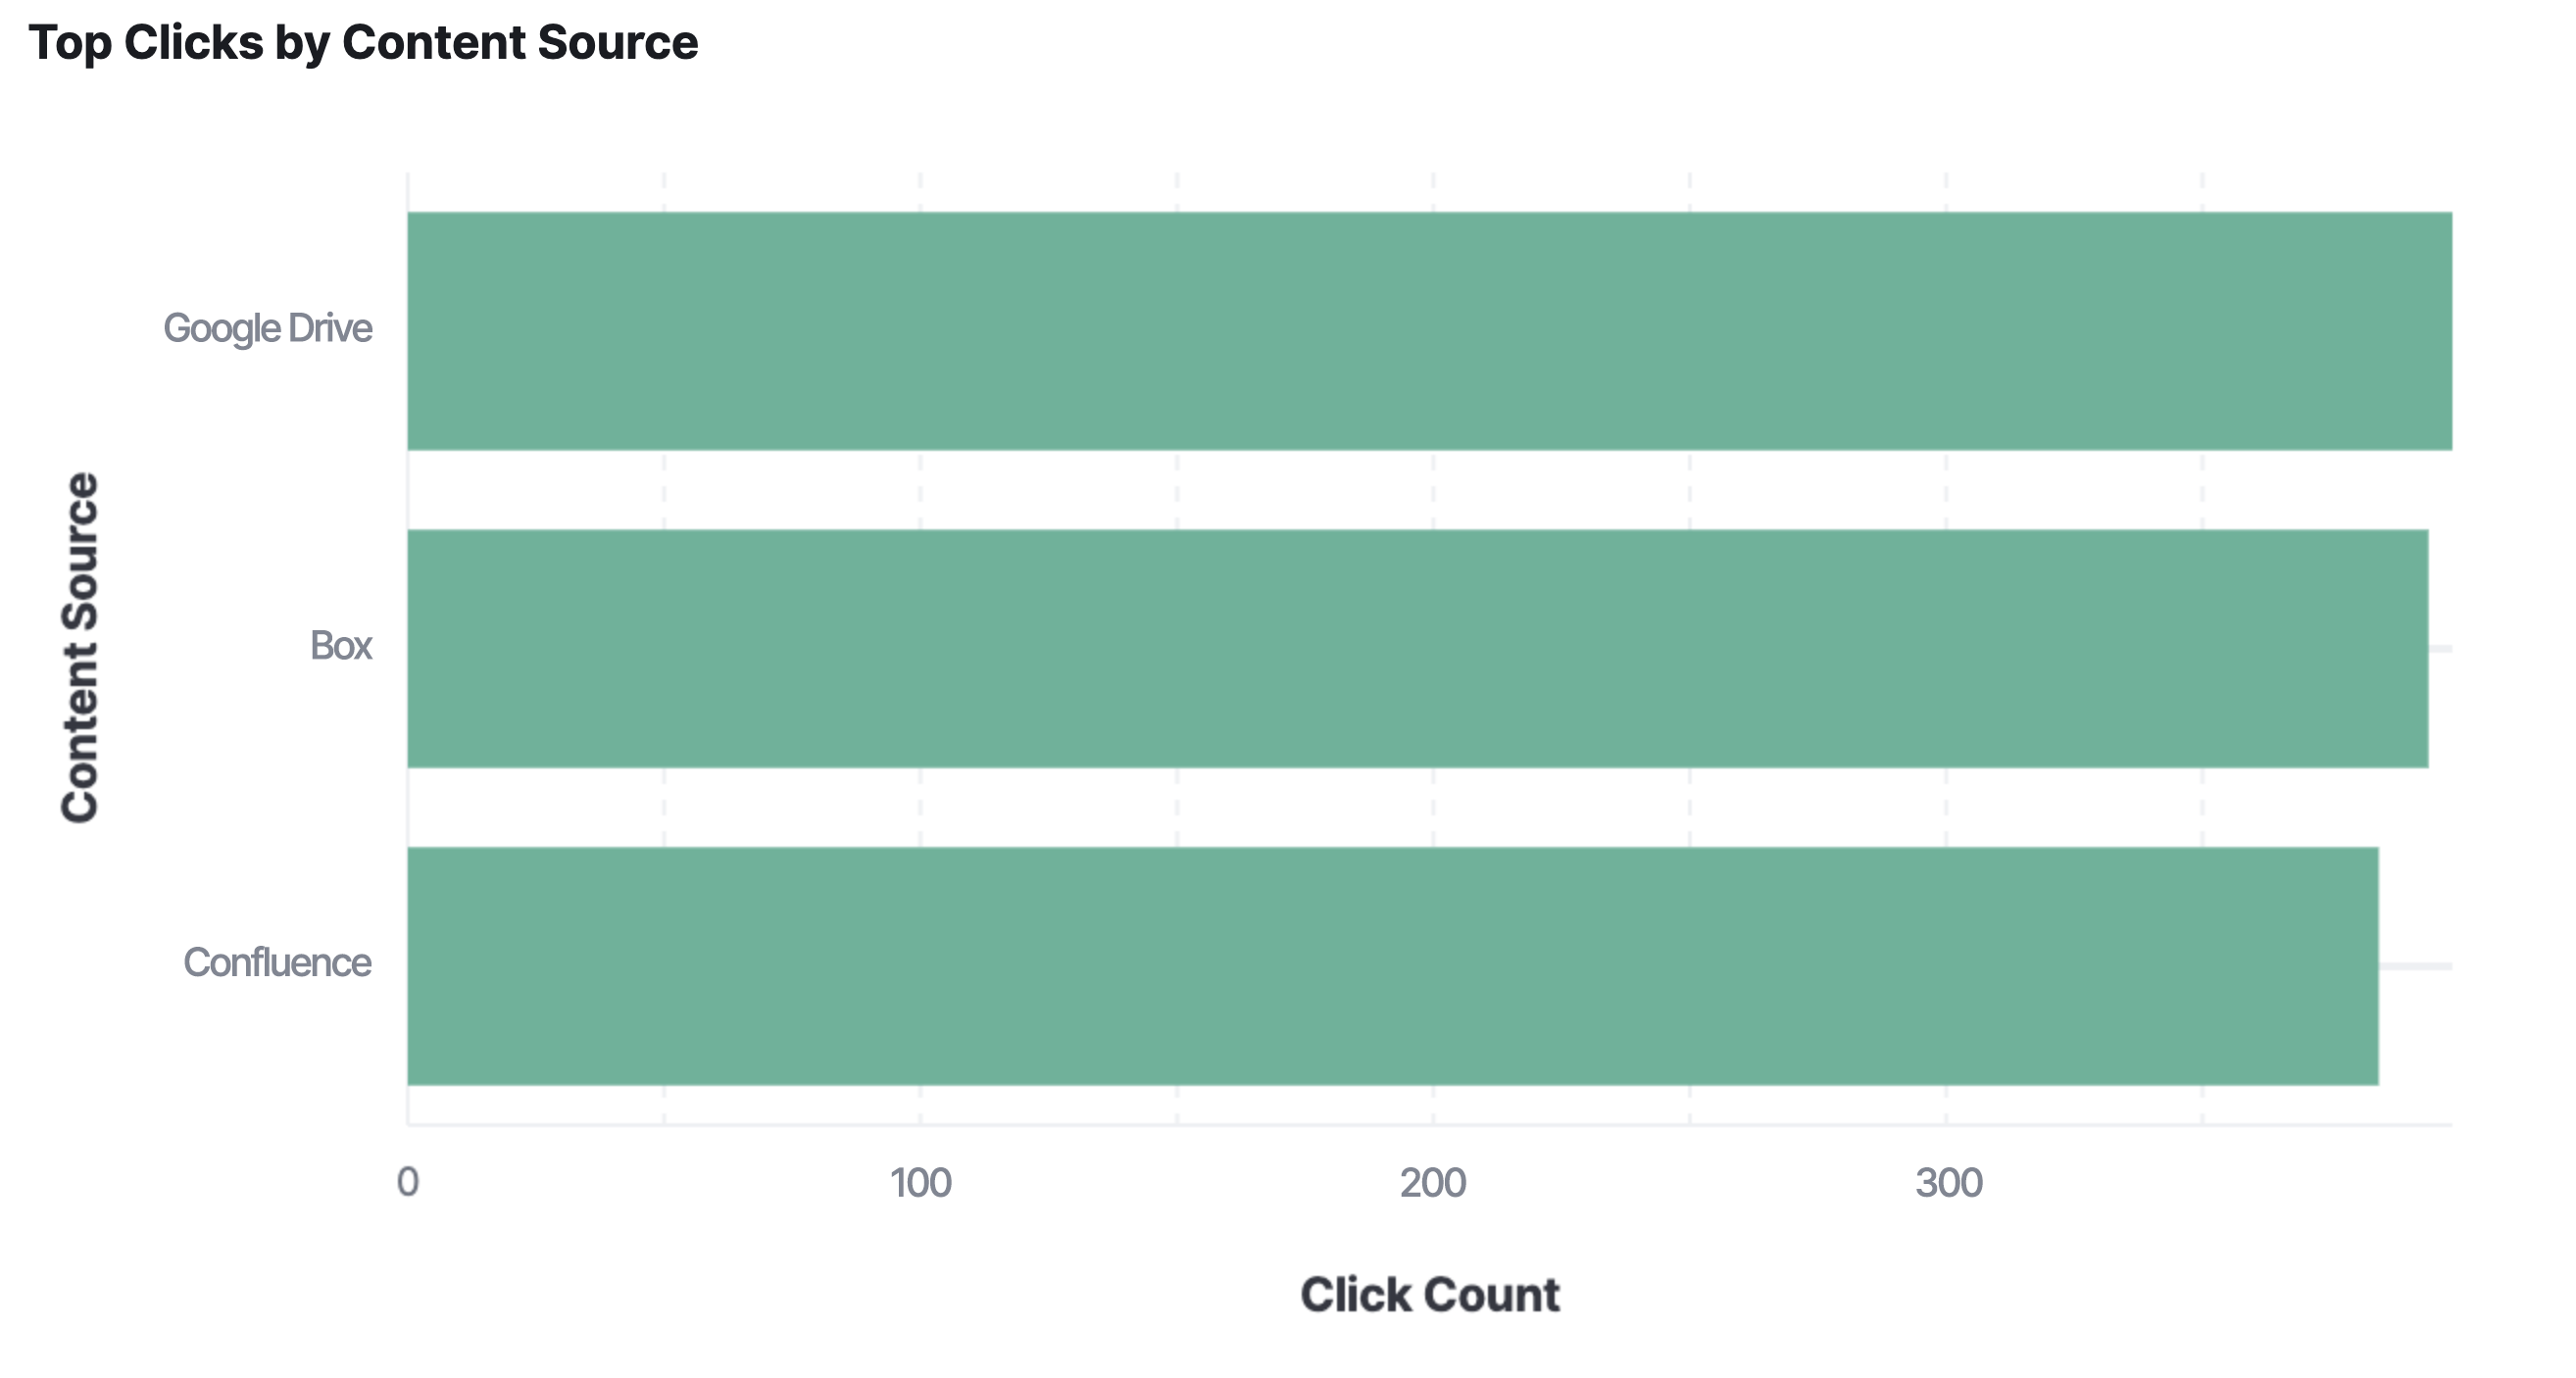 Elastic Workplace Search analytics: Top clicks per content source